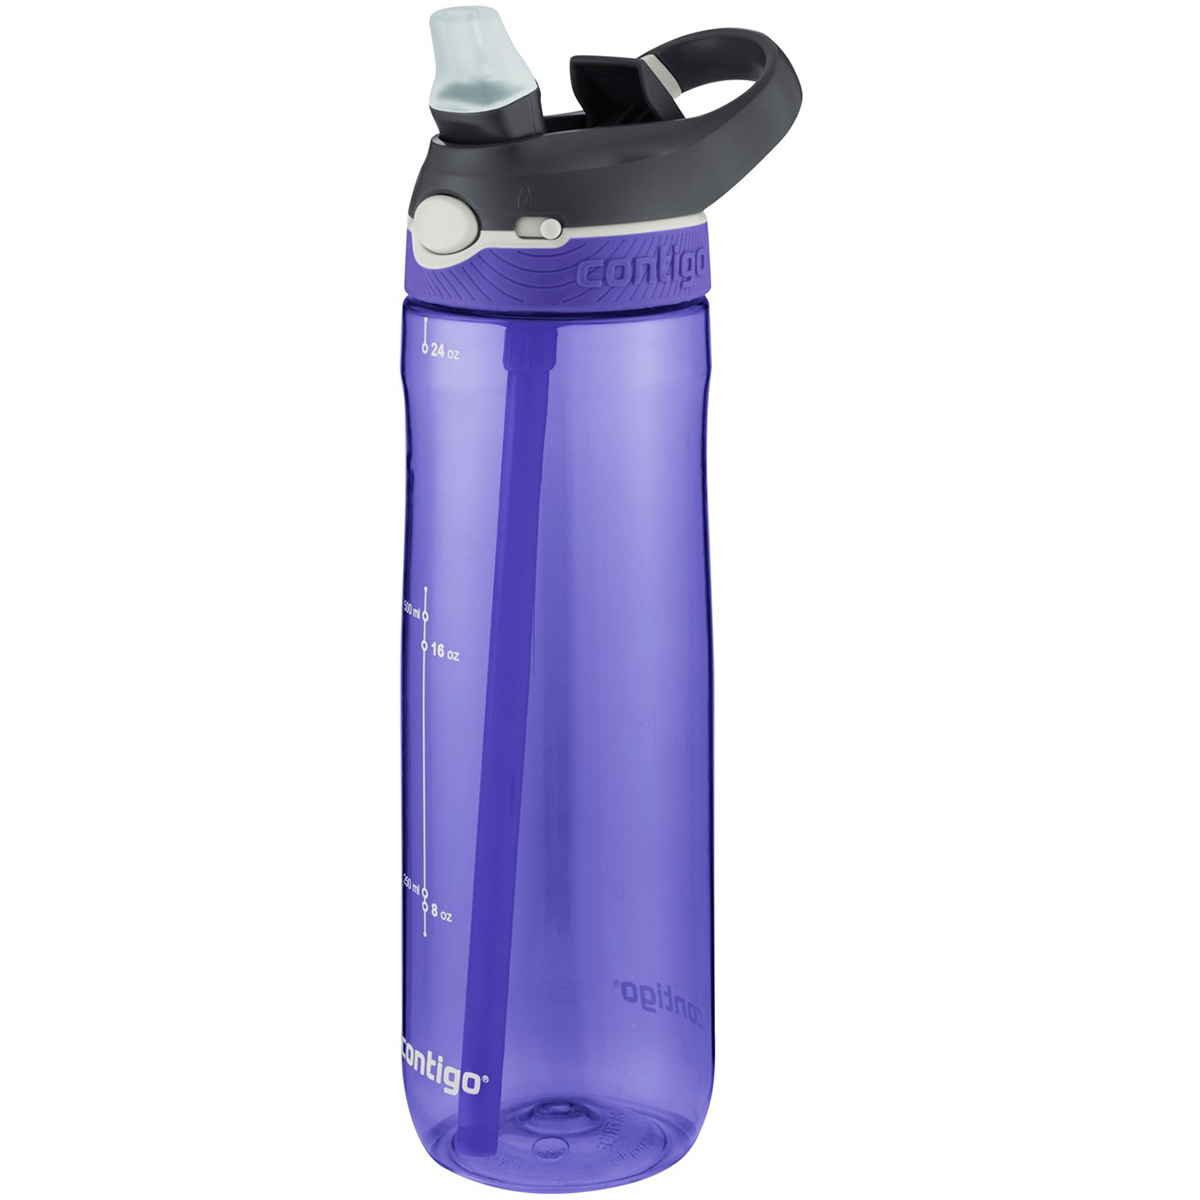 Contigo-24-oz-Ashland-Autospout-Water-Bottle miniatura 8